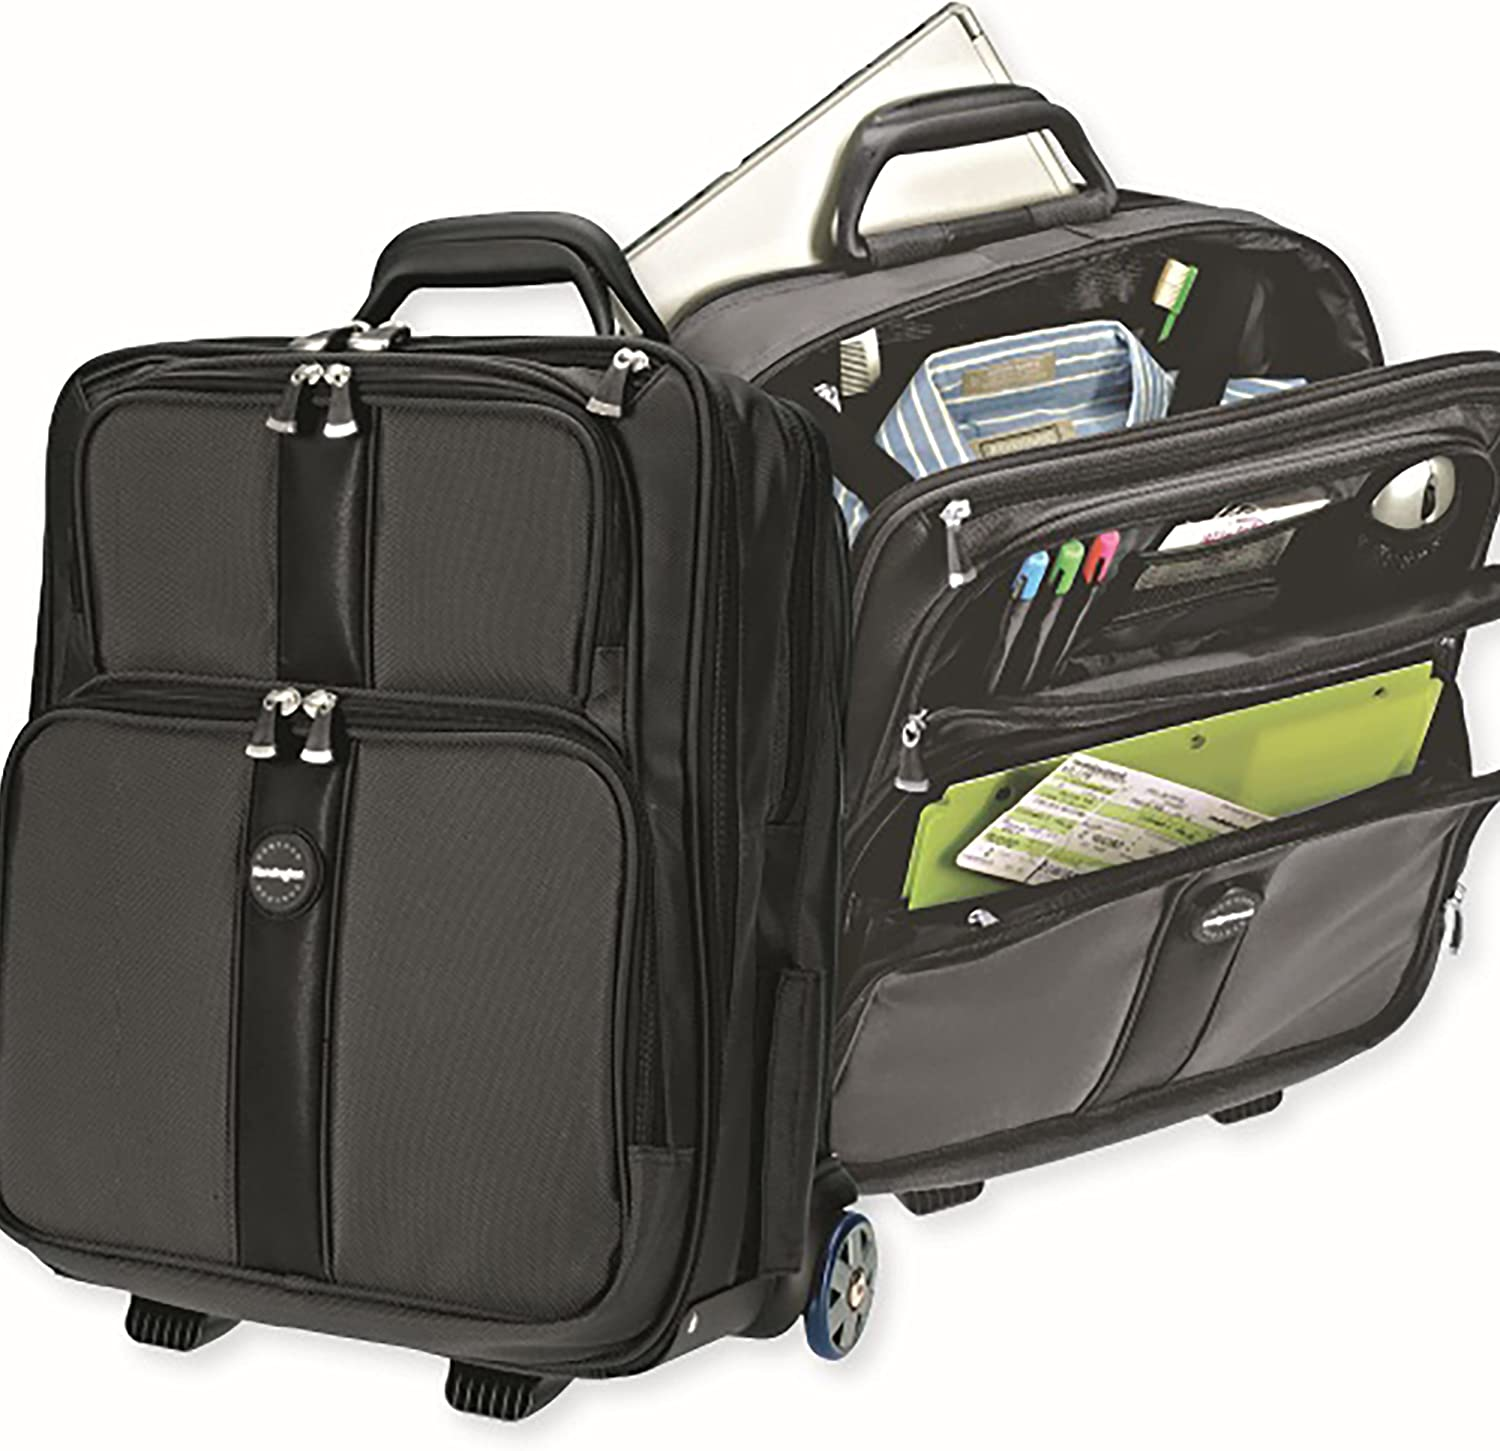 Kensington Overnight Rolling Laptop Bag (K62903A)